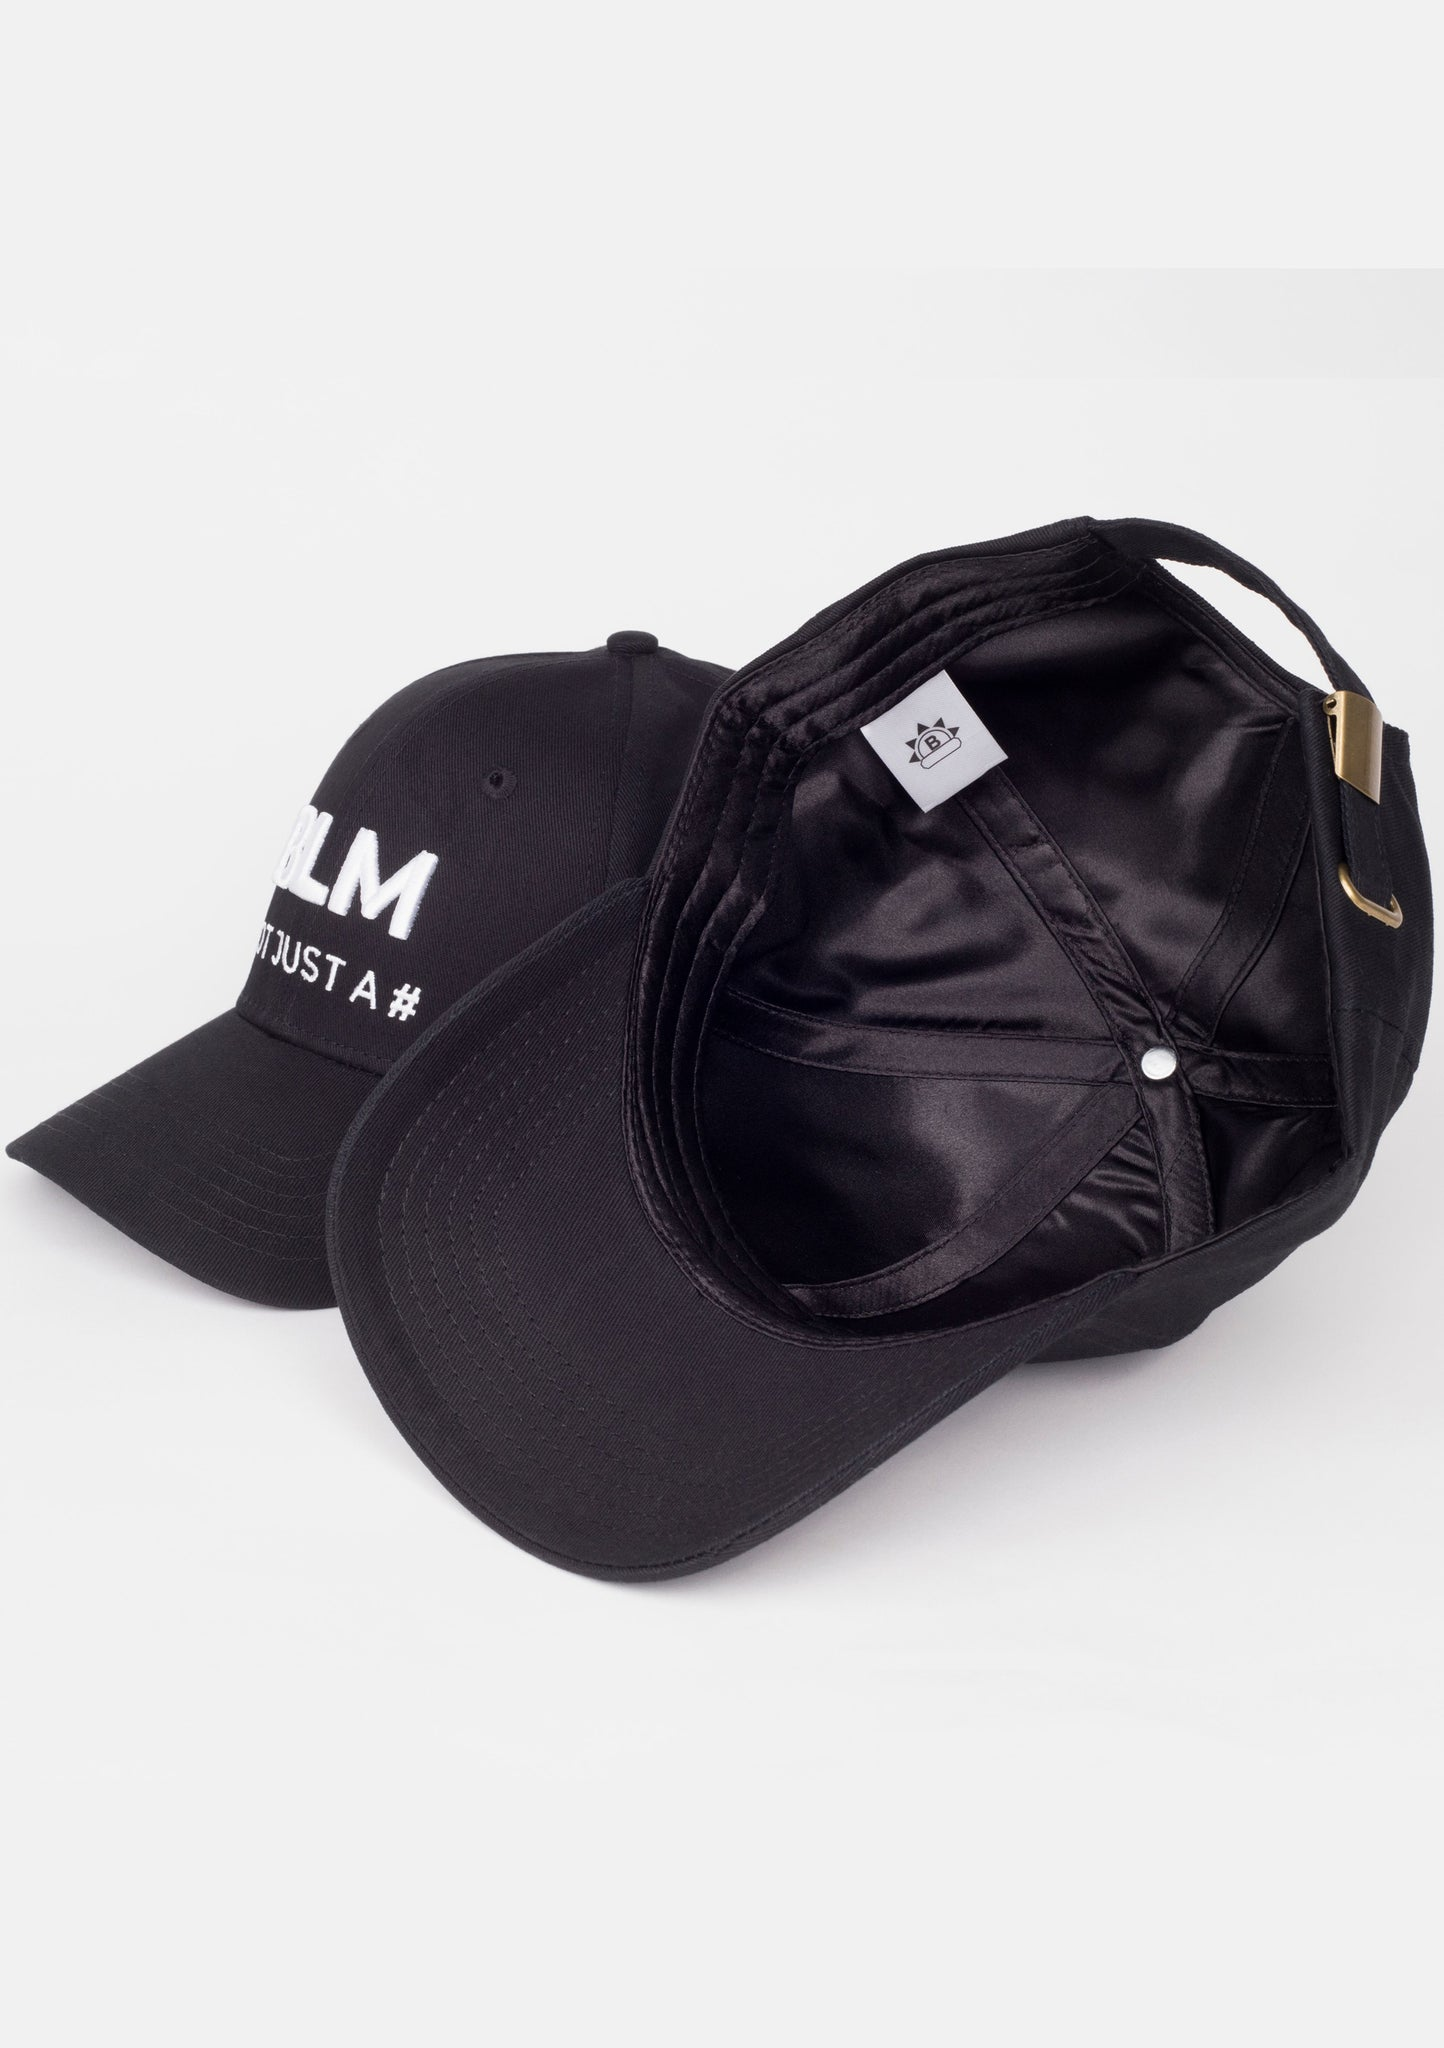 BLM Not just a # (Satin lined) Hat